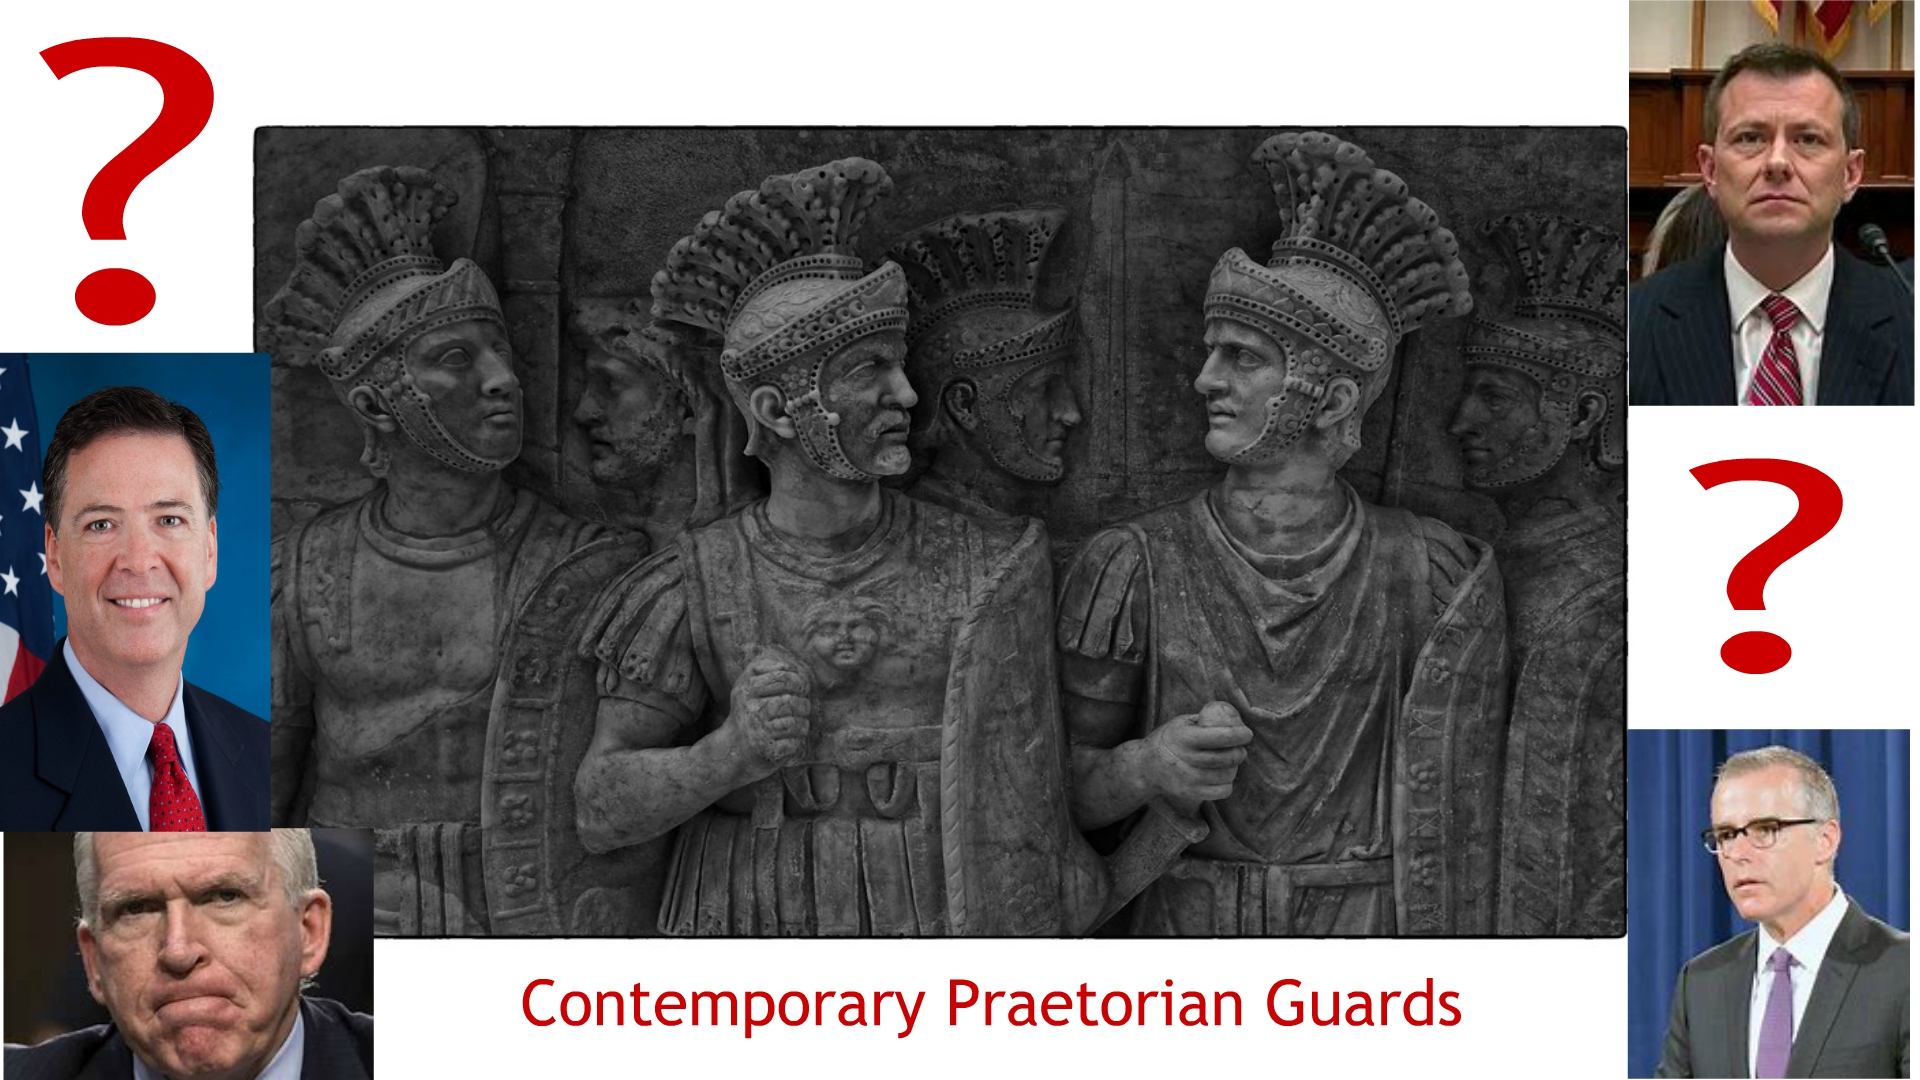 The Praetorian Guard – U.S. Security Officials Decide Who Is Fit To Be President